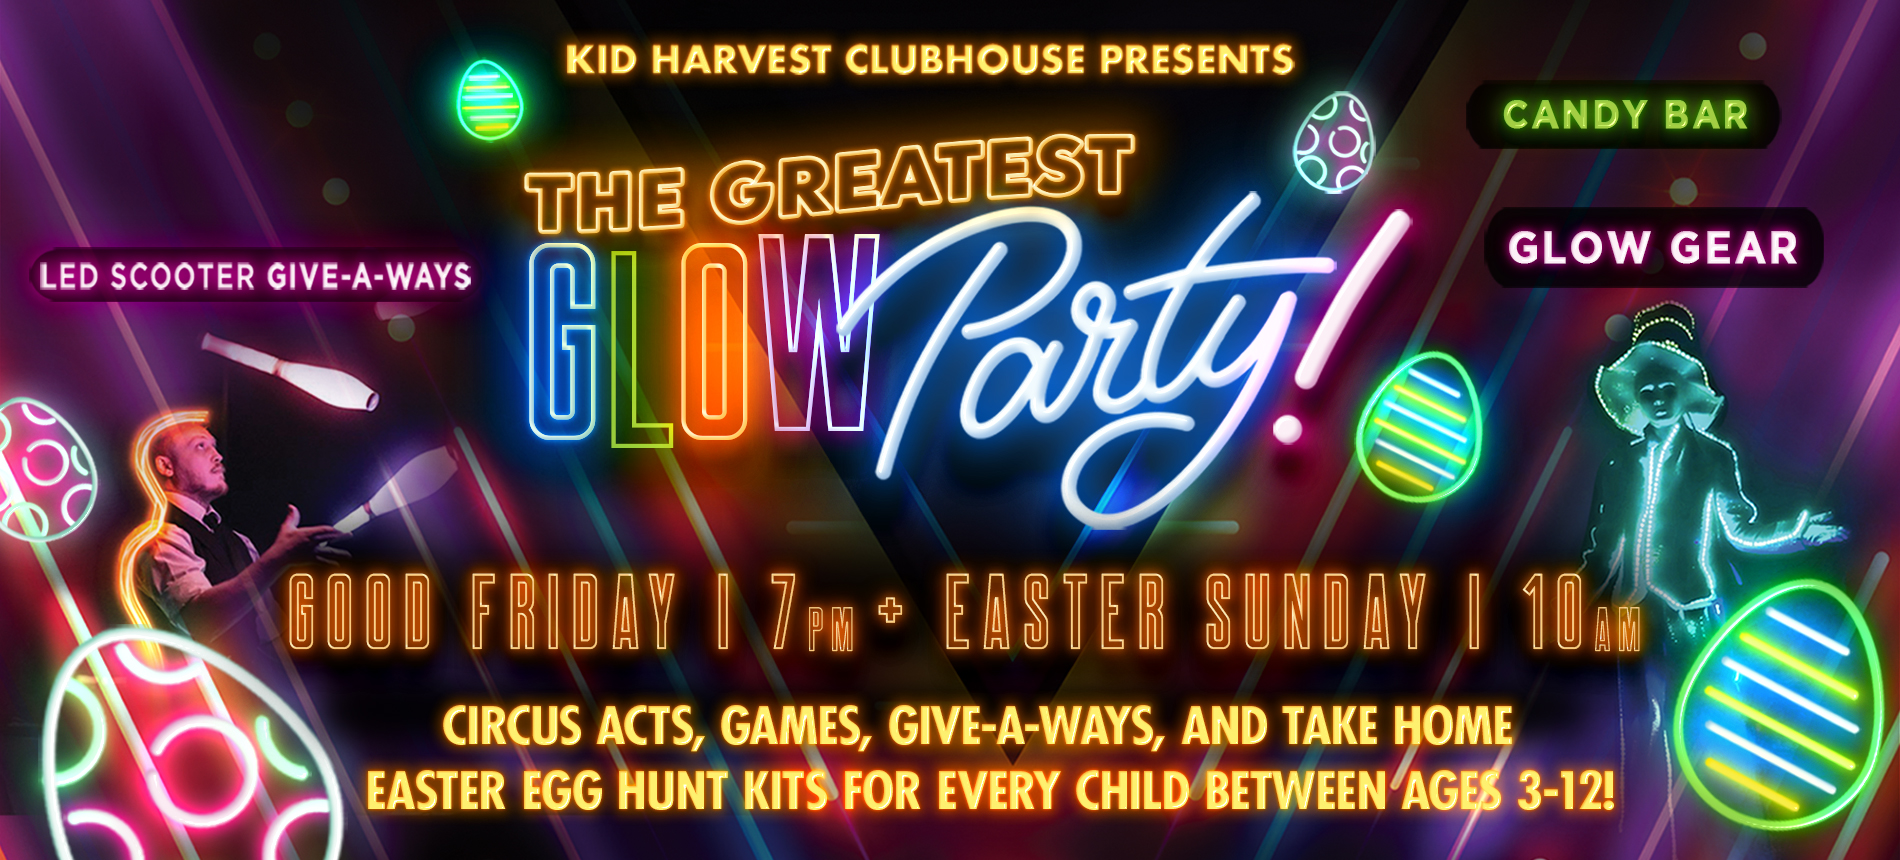 Kid Harvest Clubhouse Presents the Greatest Glowparty! Good Friday 7pm + Easter Sunday 10am Circus Acts, Games, Give-a-ways, and Take Home Easter Egg Hunt Kits for Every Child Between Ages 3-12! Led Scooter Give-a-ways Cany Bar Glow Gear